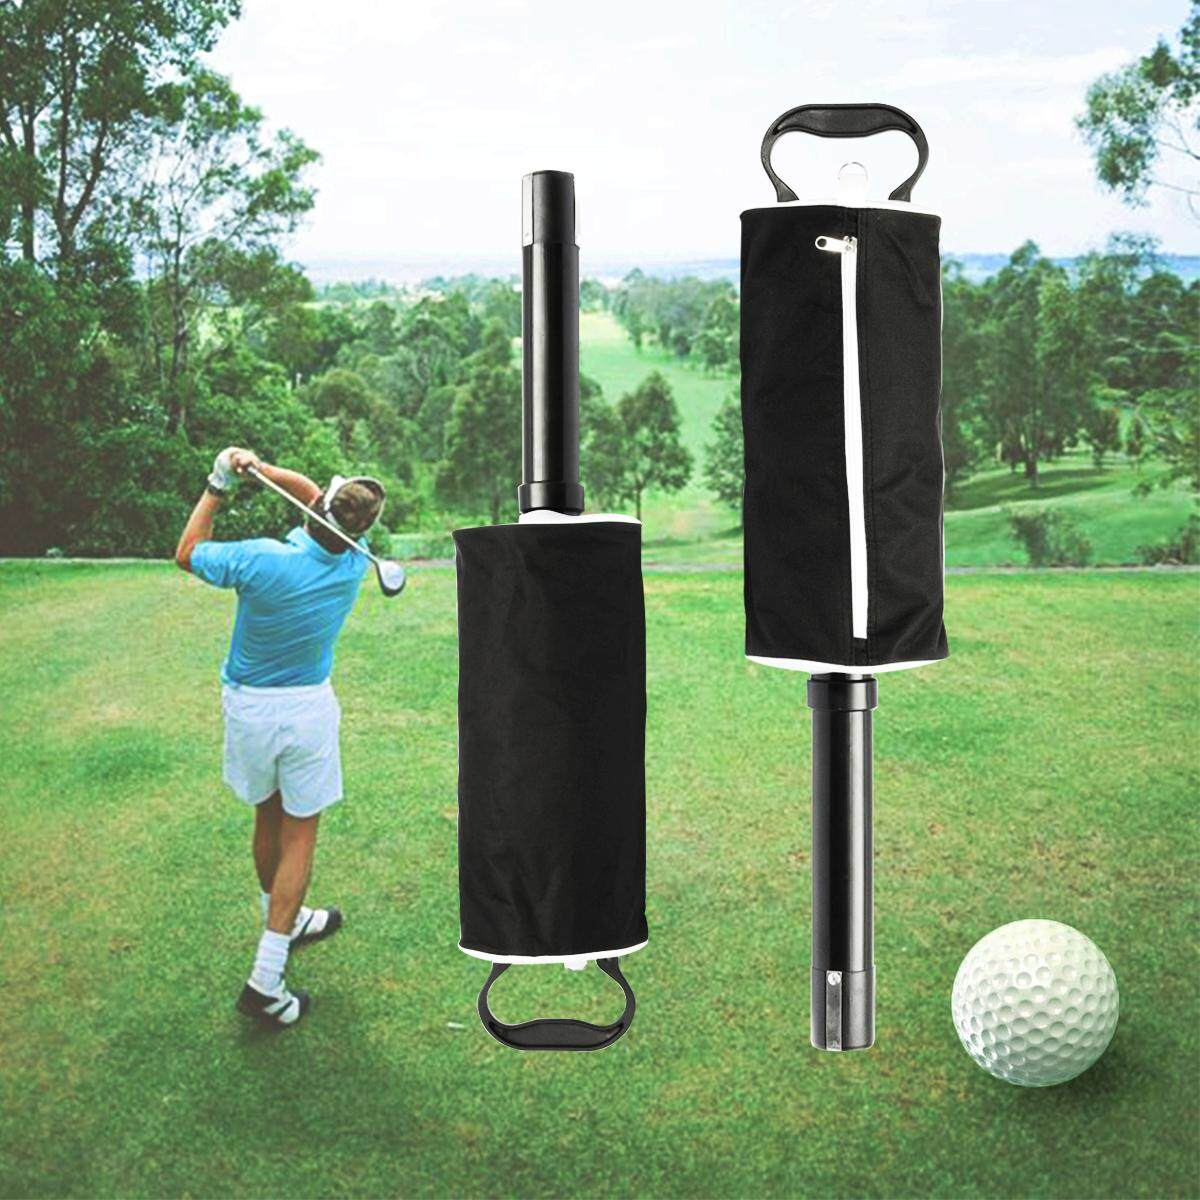 【free Shipping + Flash Deal】black Golf Ball Pick Up Zipper Shag Bag With Handle Retriever Collector Storage By Freebang.